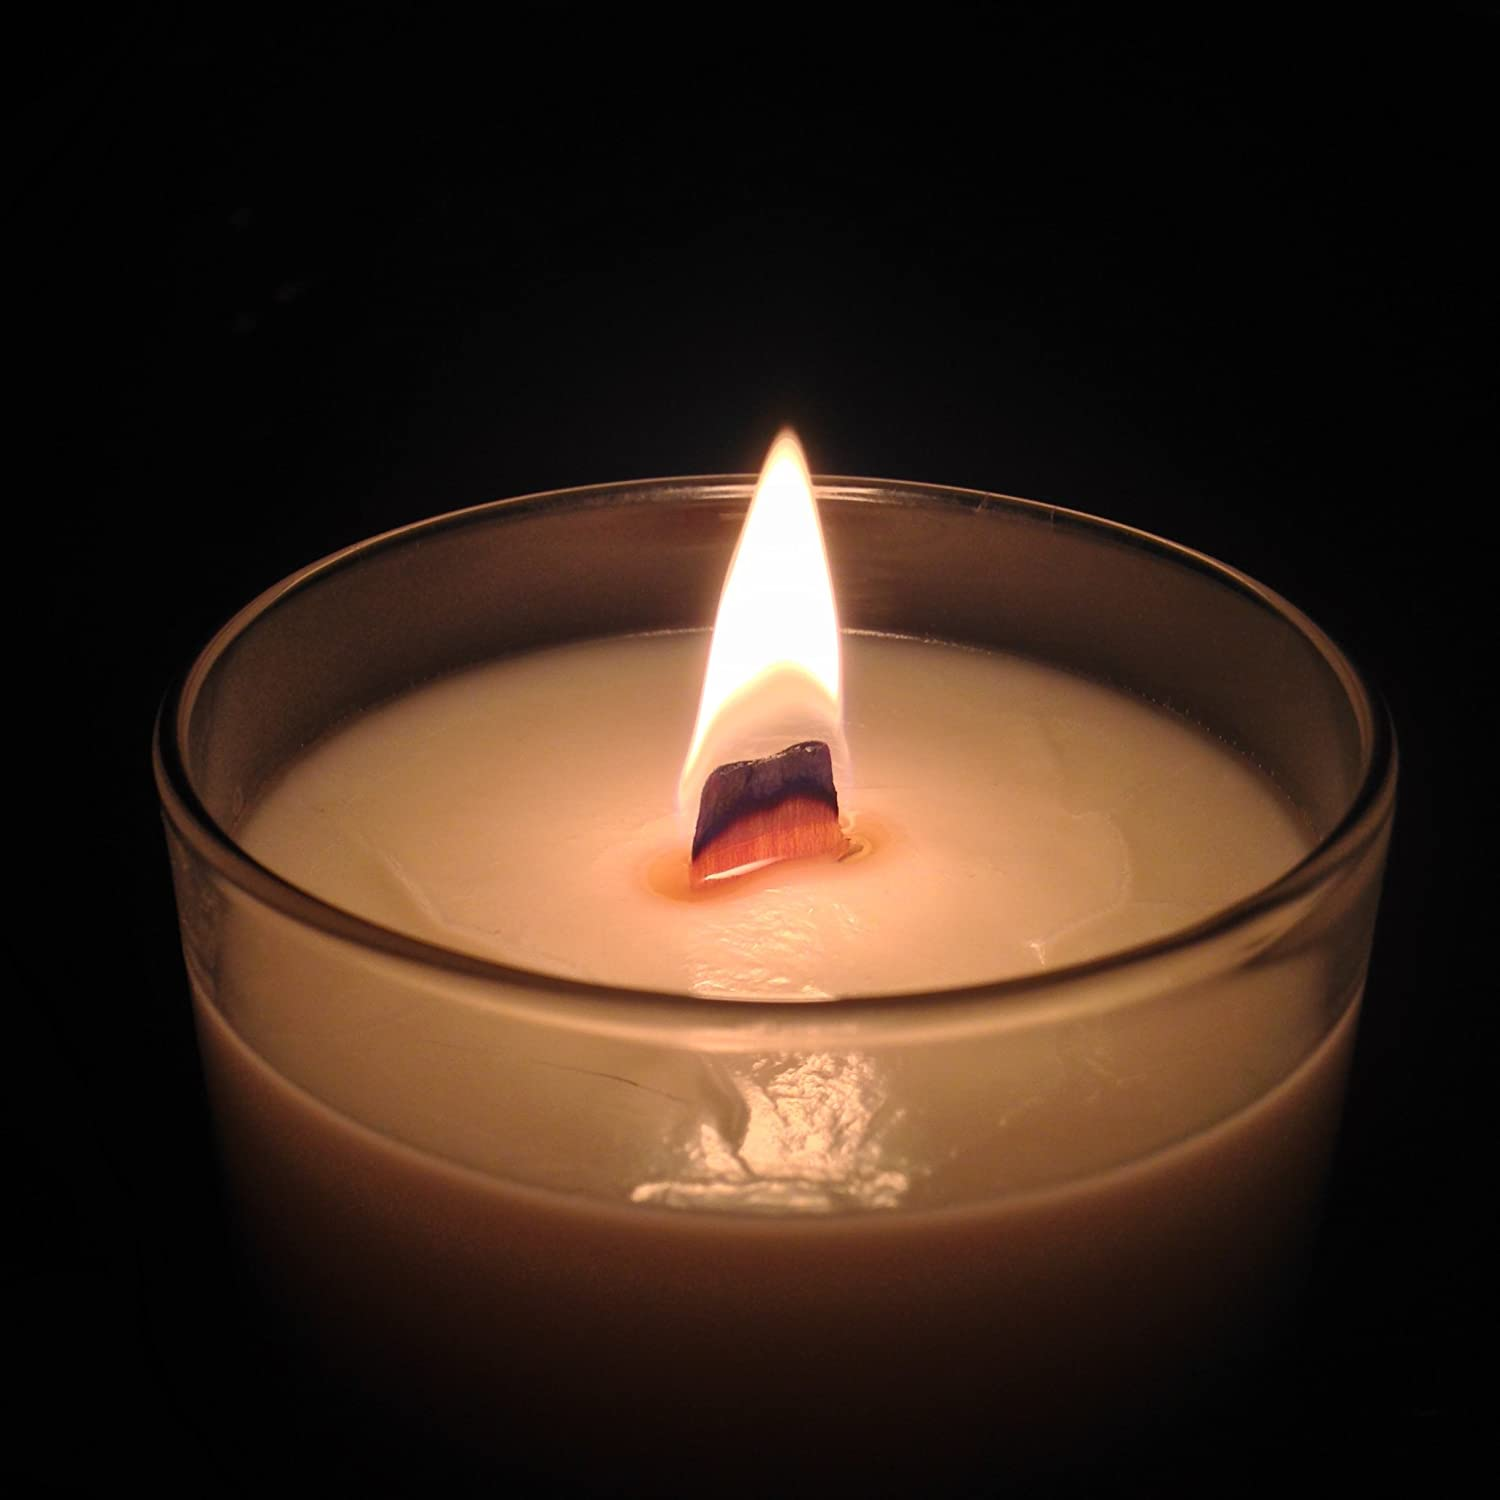 Nag Champa Candle 10oz Natural Eco Hand Poured Soy Wooden Wick Crackle Candle Tennessee Wicks